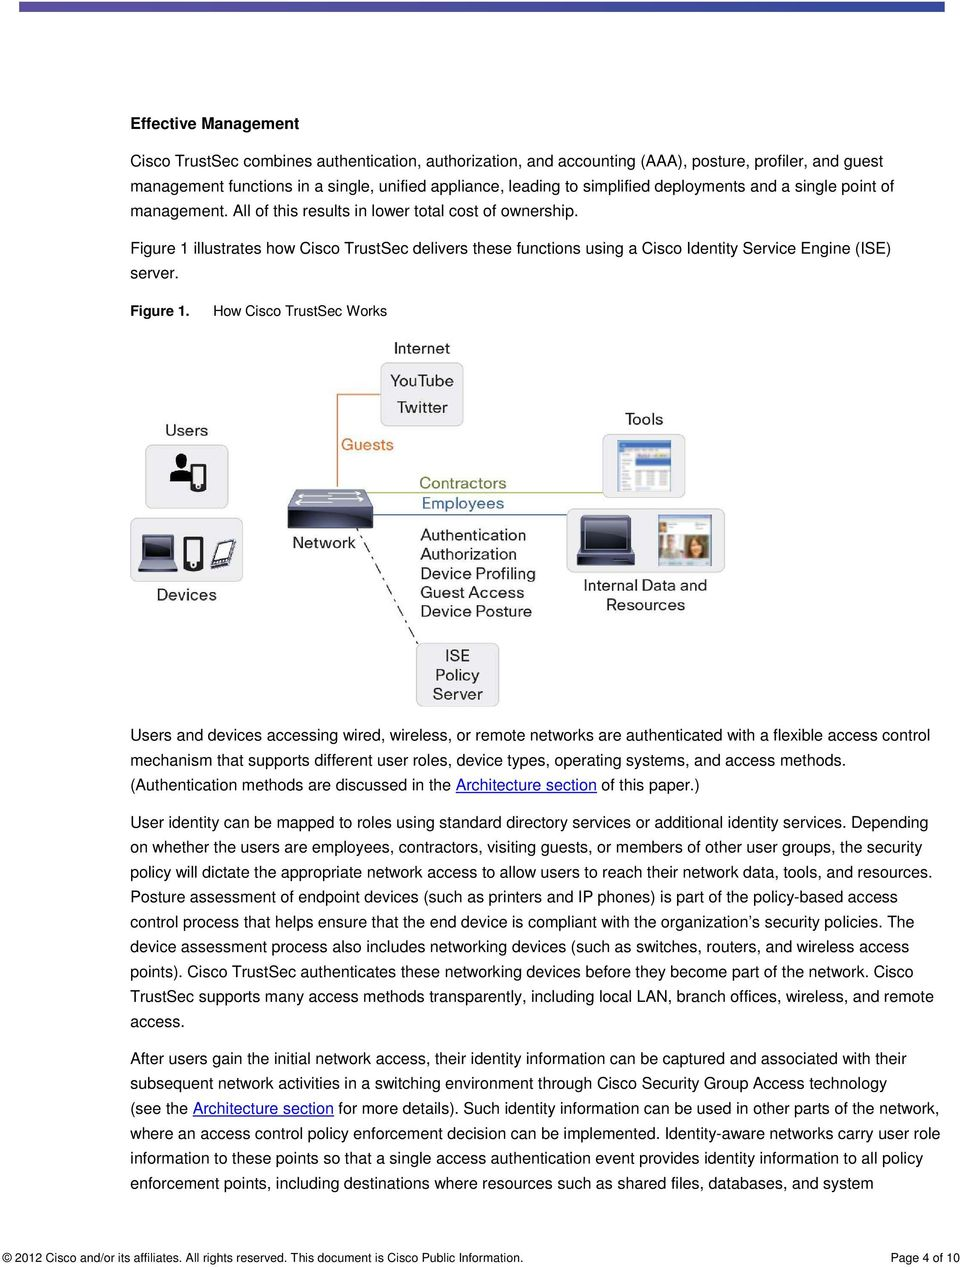 Figure 1 illustrates how Cisco TrustSec delivers these functions using a Cisco Identity Service Engine (ISE) server. Figure 1.